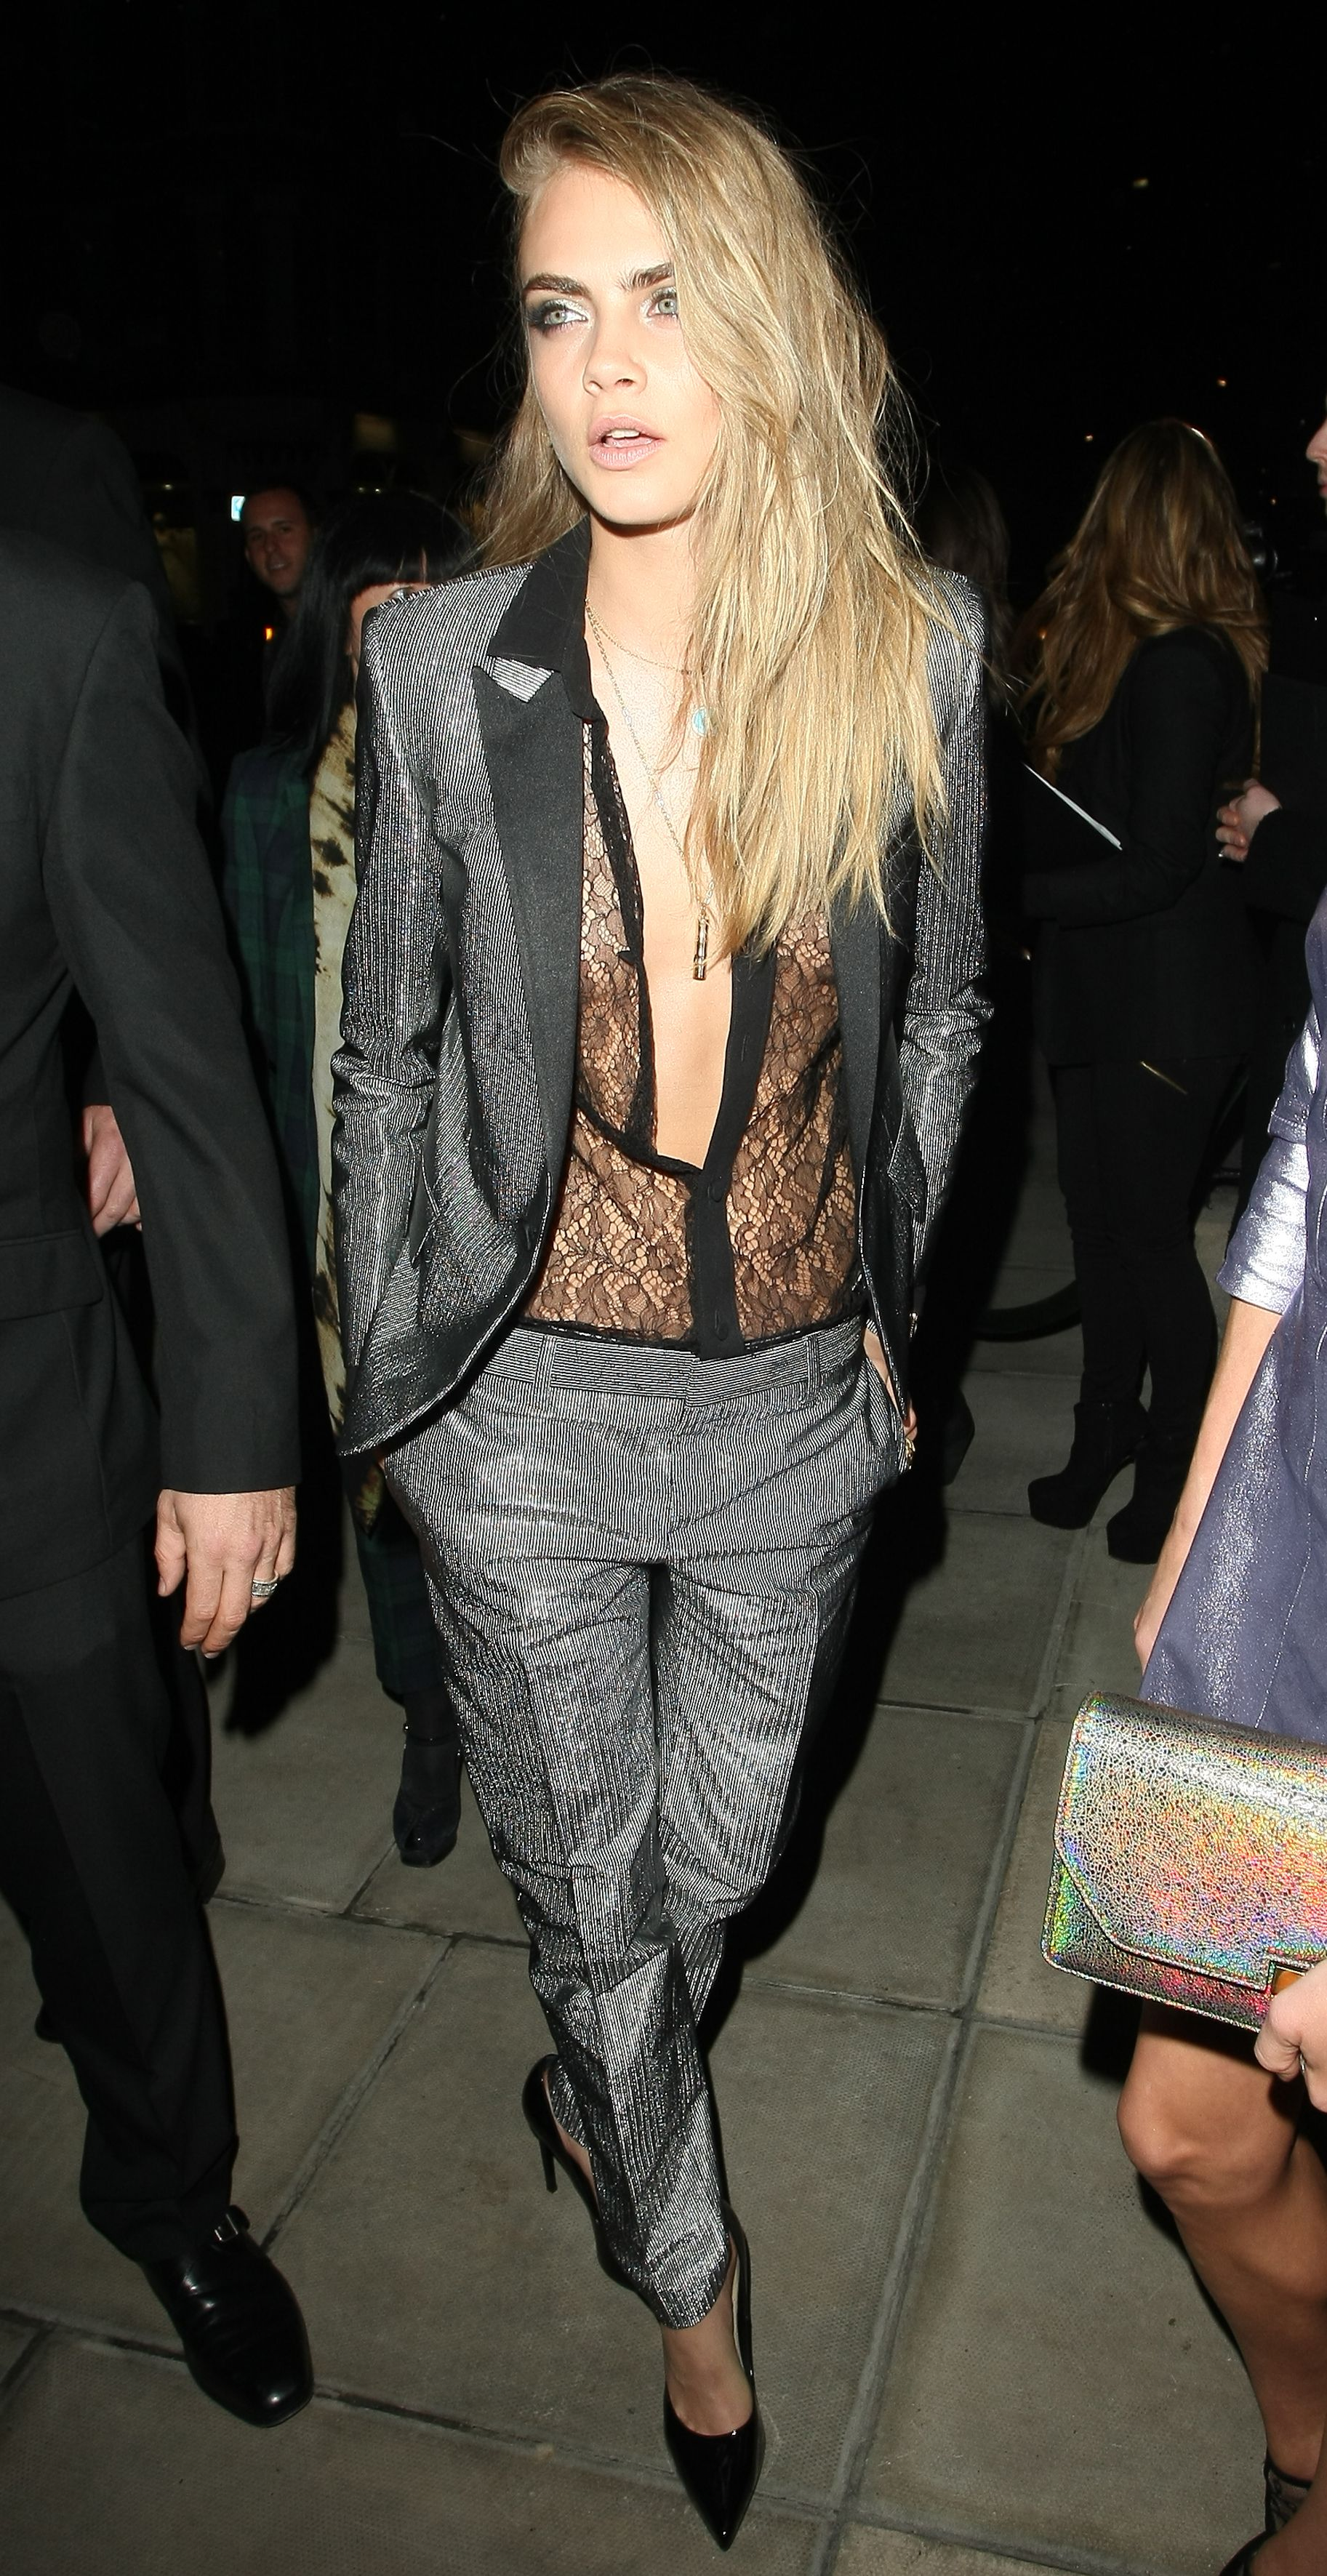 50b787f470ca Cara Delevingne stunned back in London town as she went braless in a sheer  lace blouse underneath a metallic trouser suit.